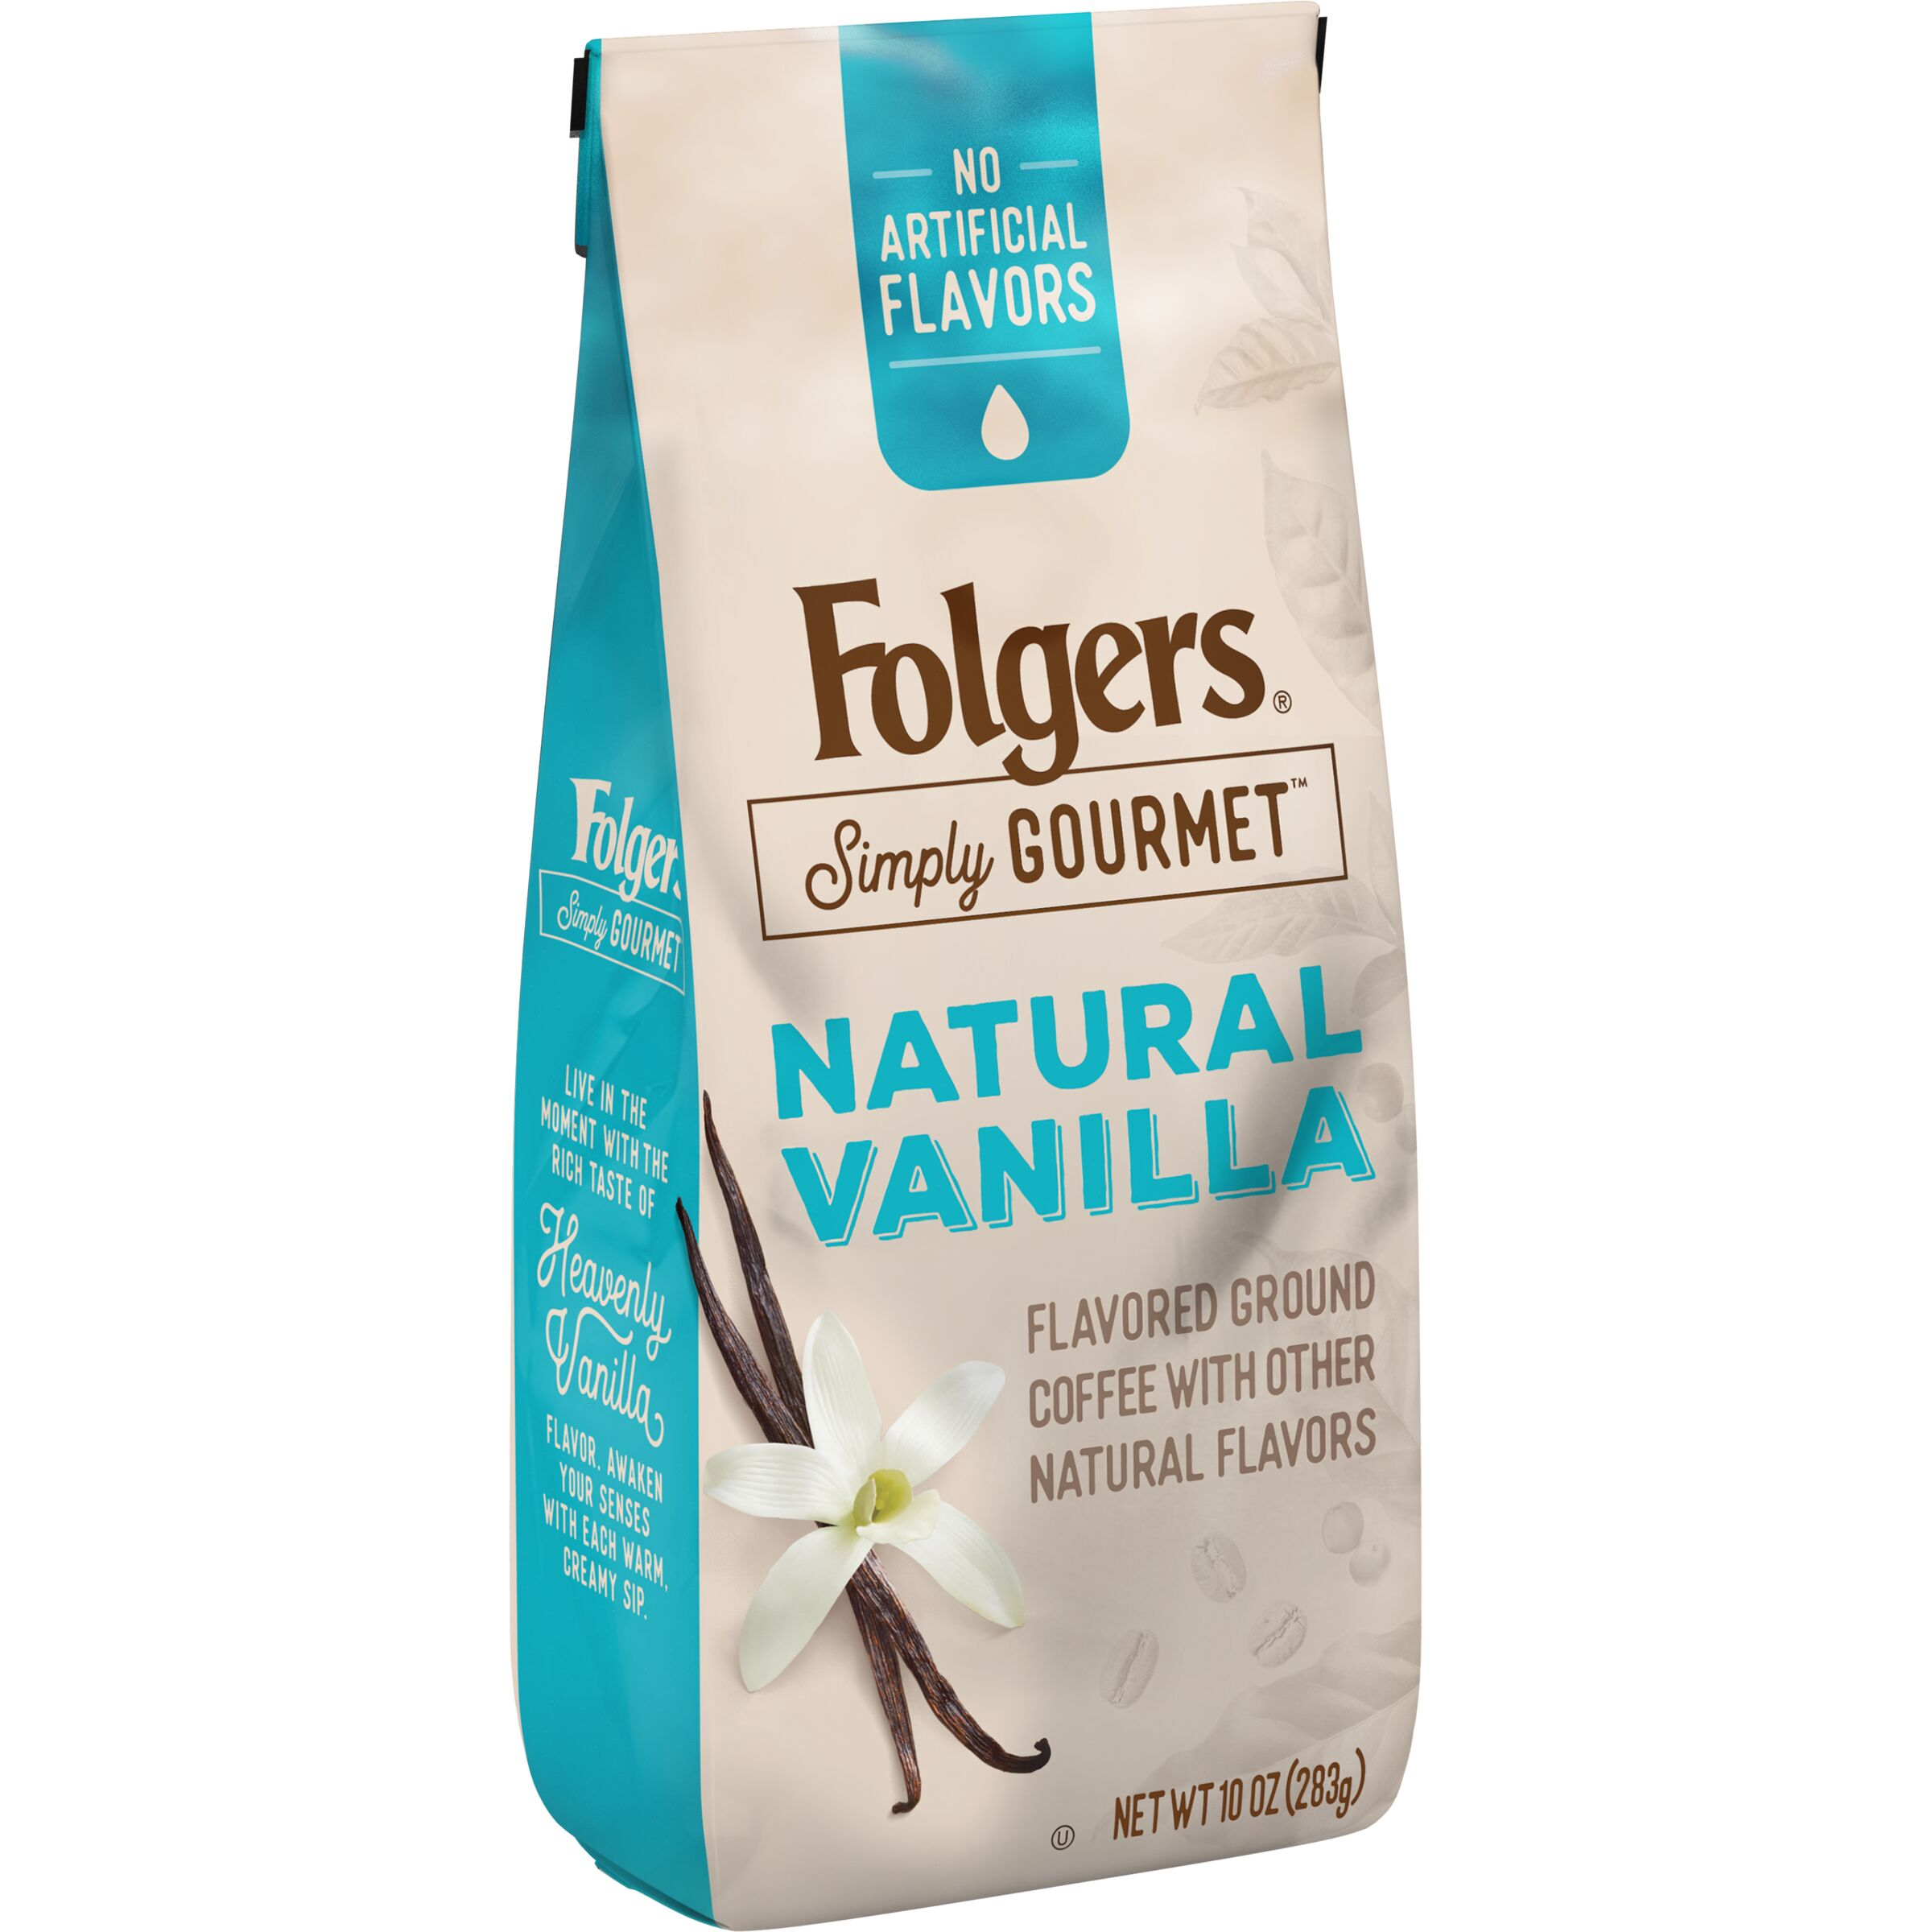 Folgers Simply Gourmet Natural Vanilla Flavored Ground Coffee